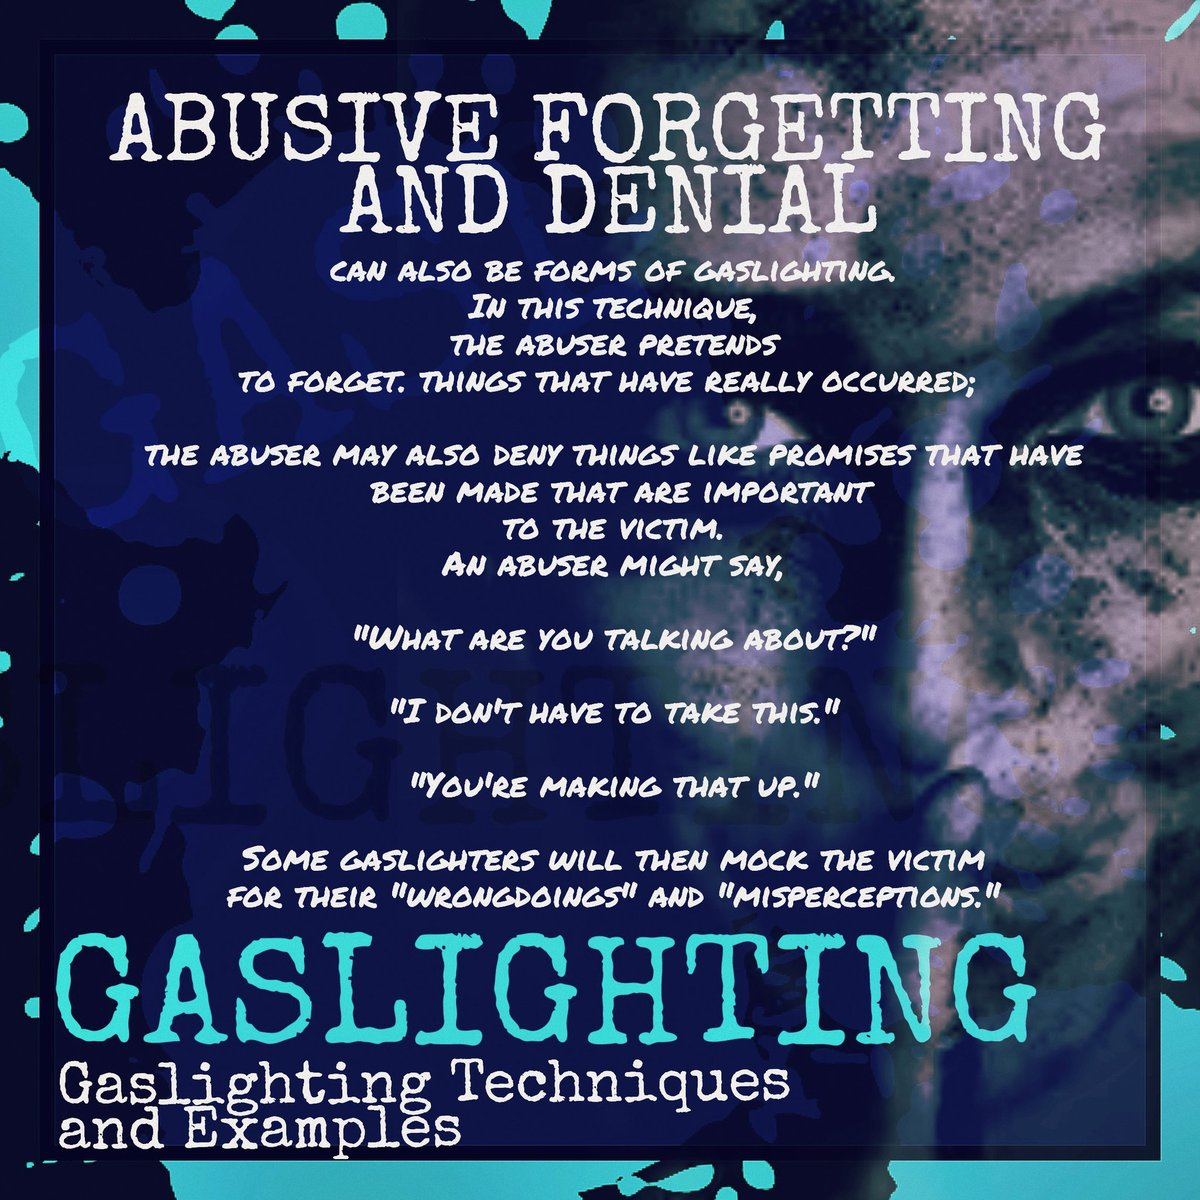 //.healthyplace.com/abuse/emotional-psychological-abuse/gaslighting -definition-techniques-and-being-gaslighted/ u2026  sc 1 st  Twitter & PoppysMission on Twitter: